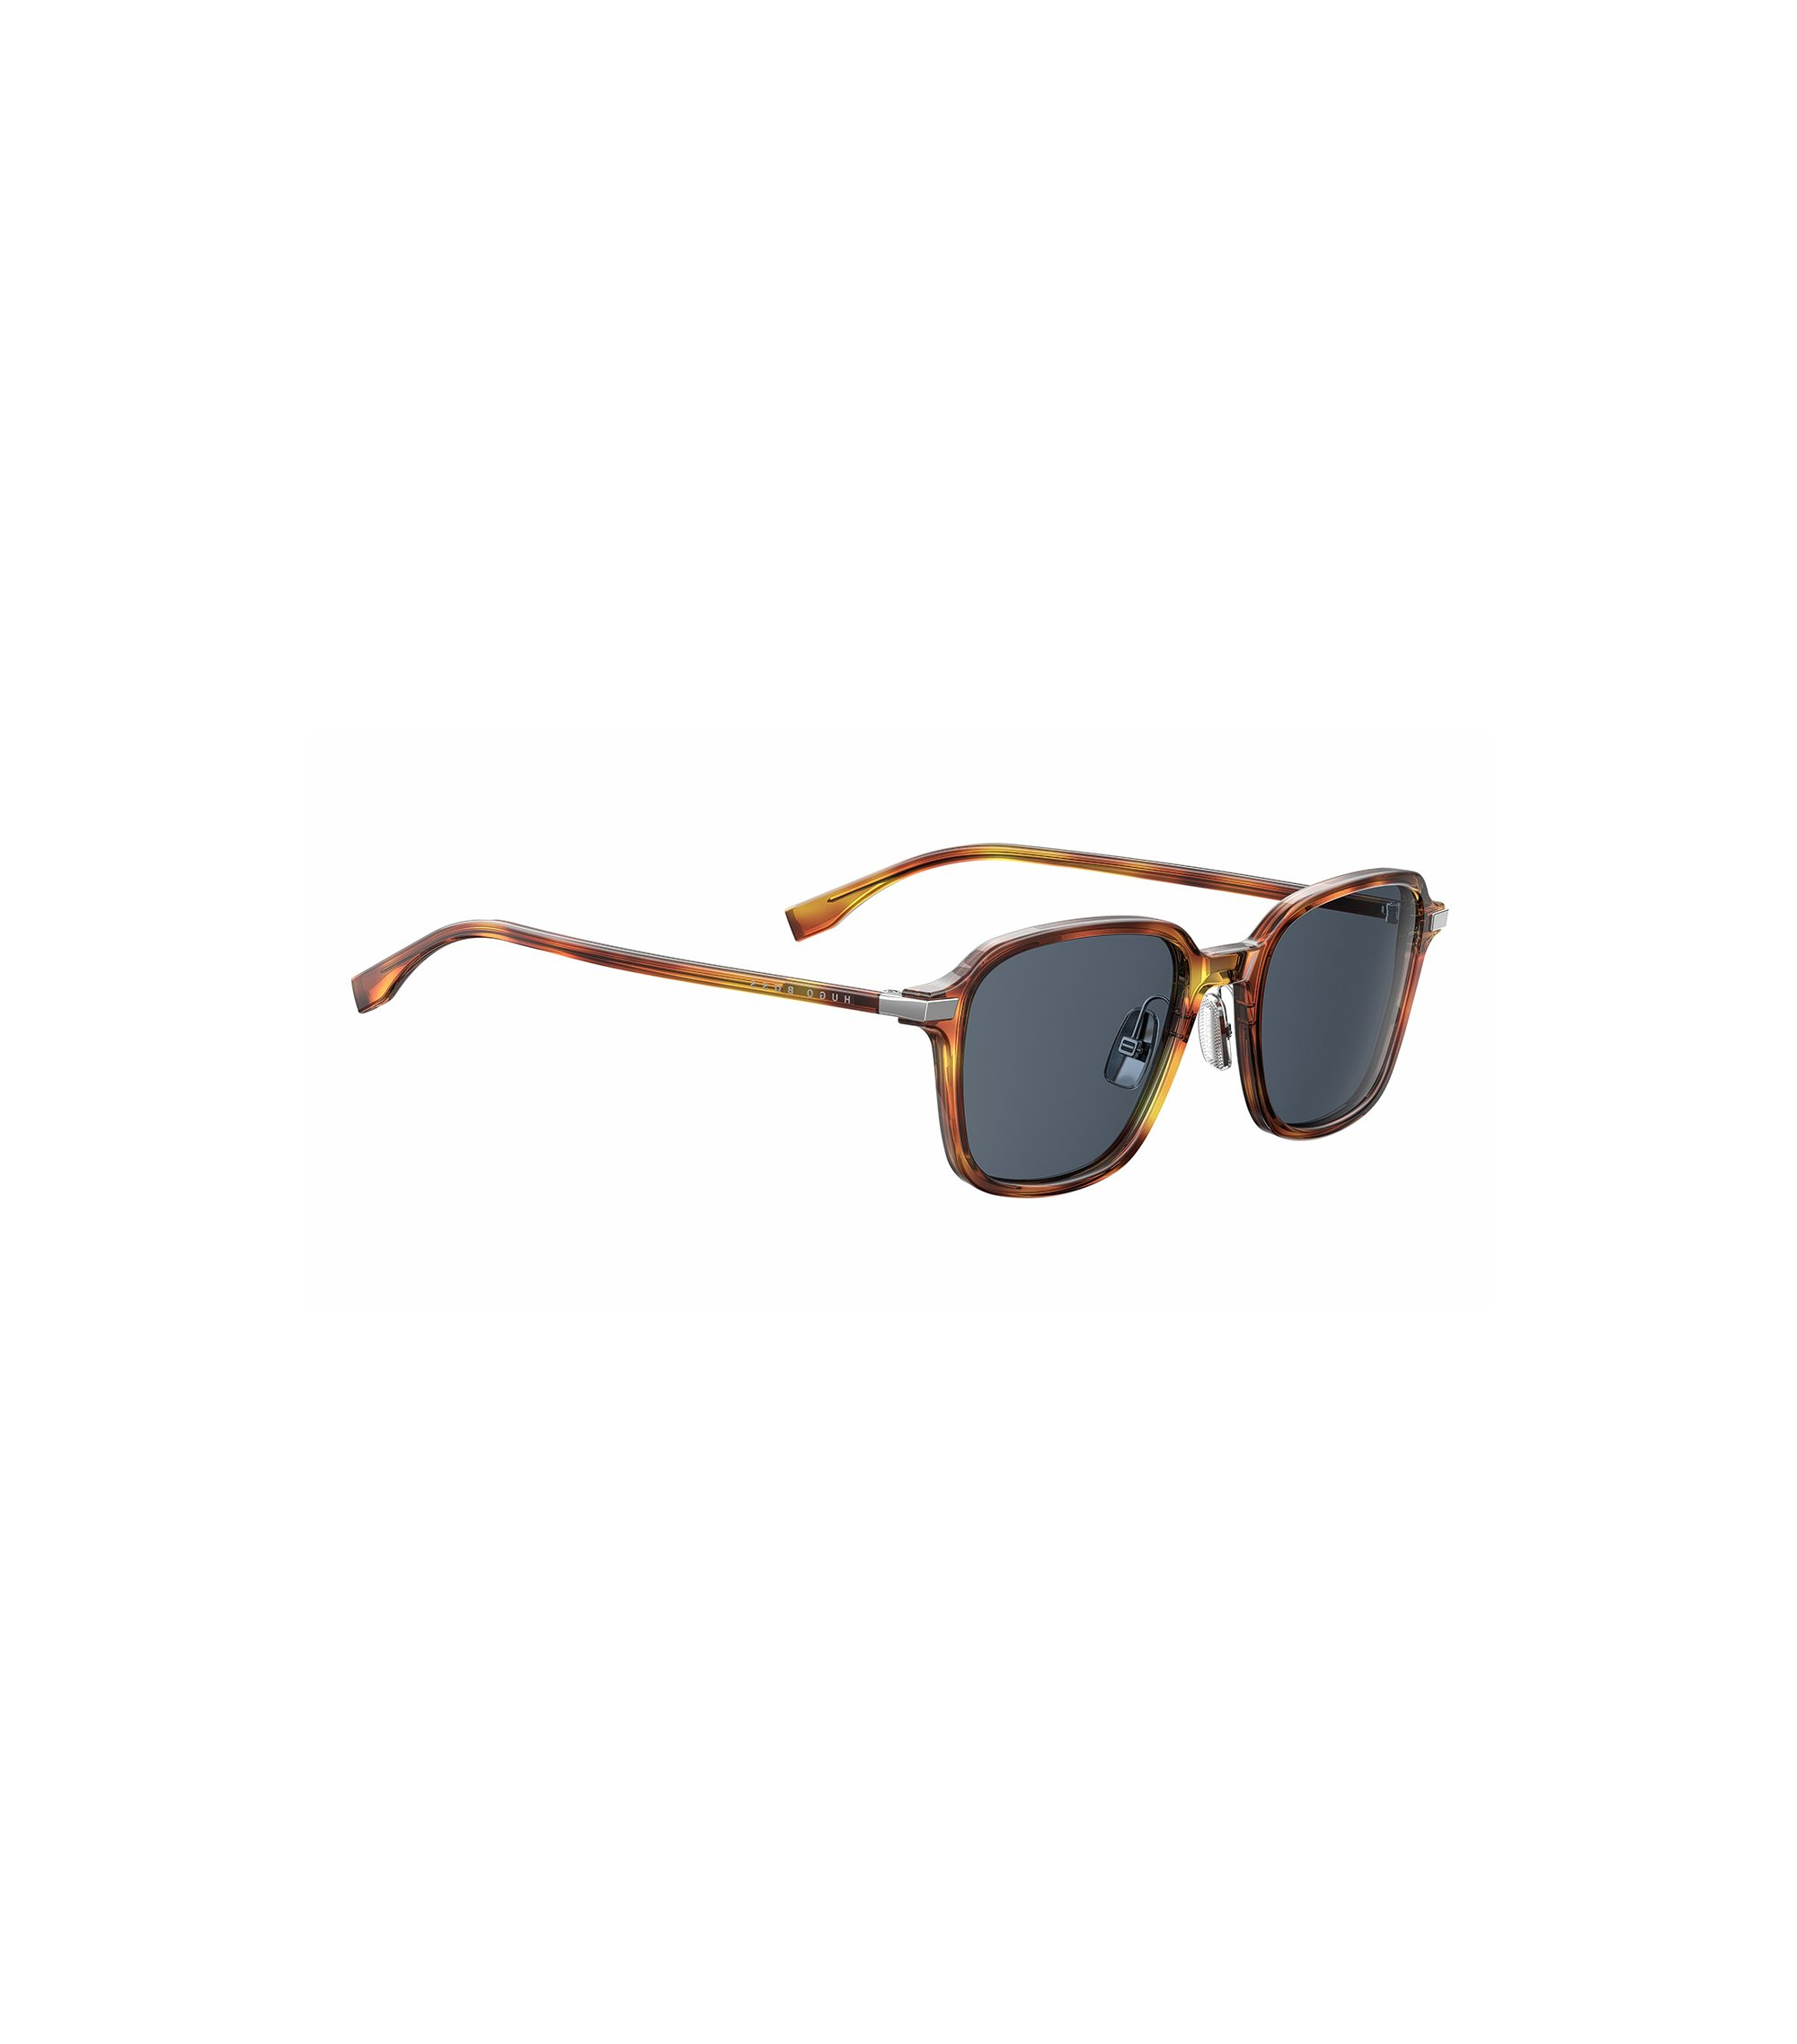 Black Lens Havana Square Sunglasses | BOSS 0909S, Assorted-Pre-Pack